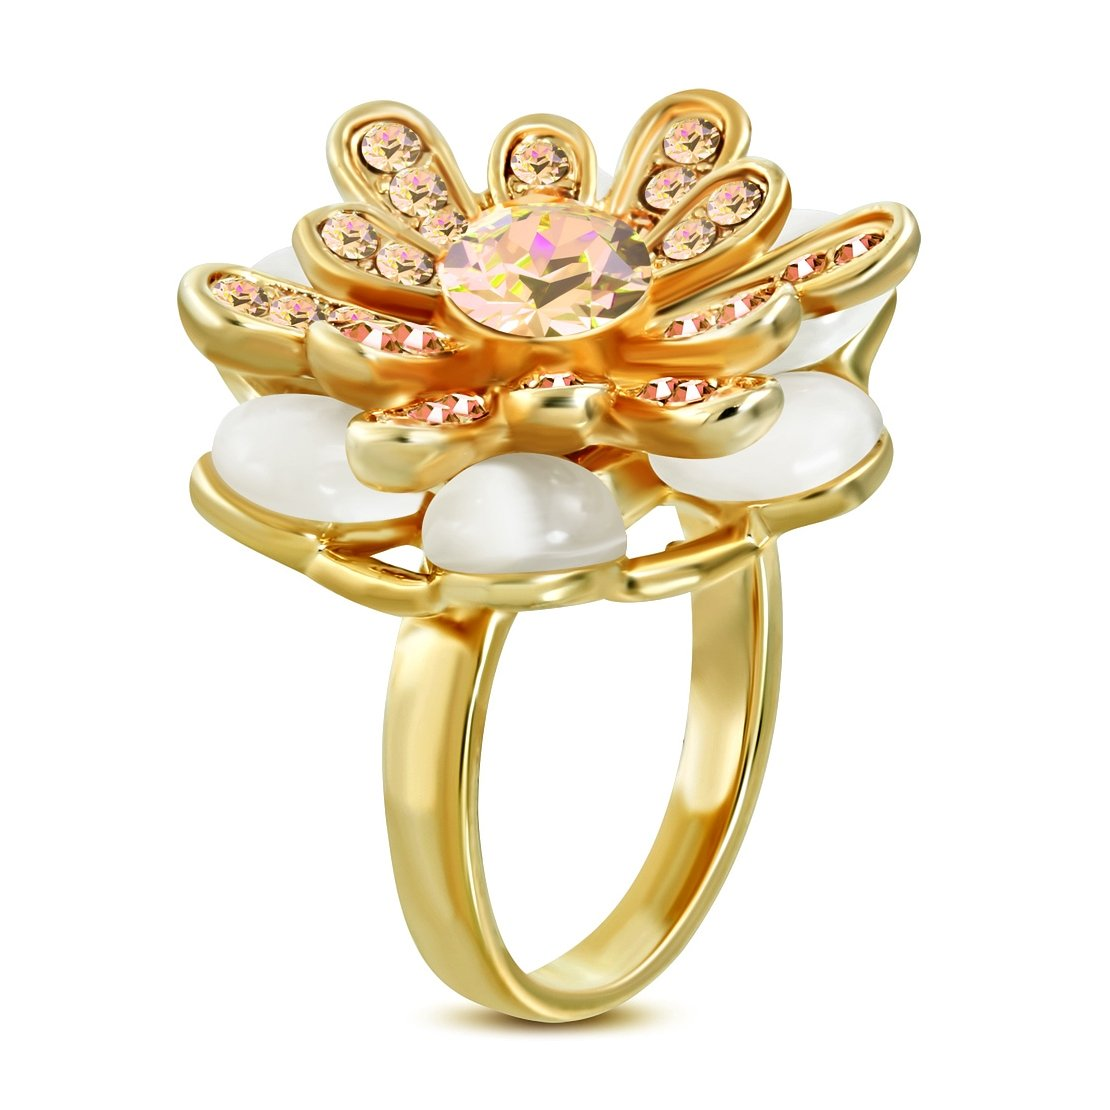 NRG 316L Jewelry Rose//Pink Gold Color Plated Flower Cocktail Ring with Clear CZ /& Cats Eyes Stone